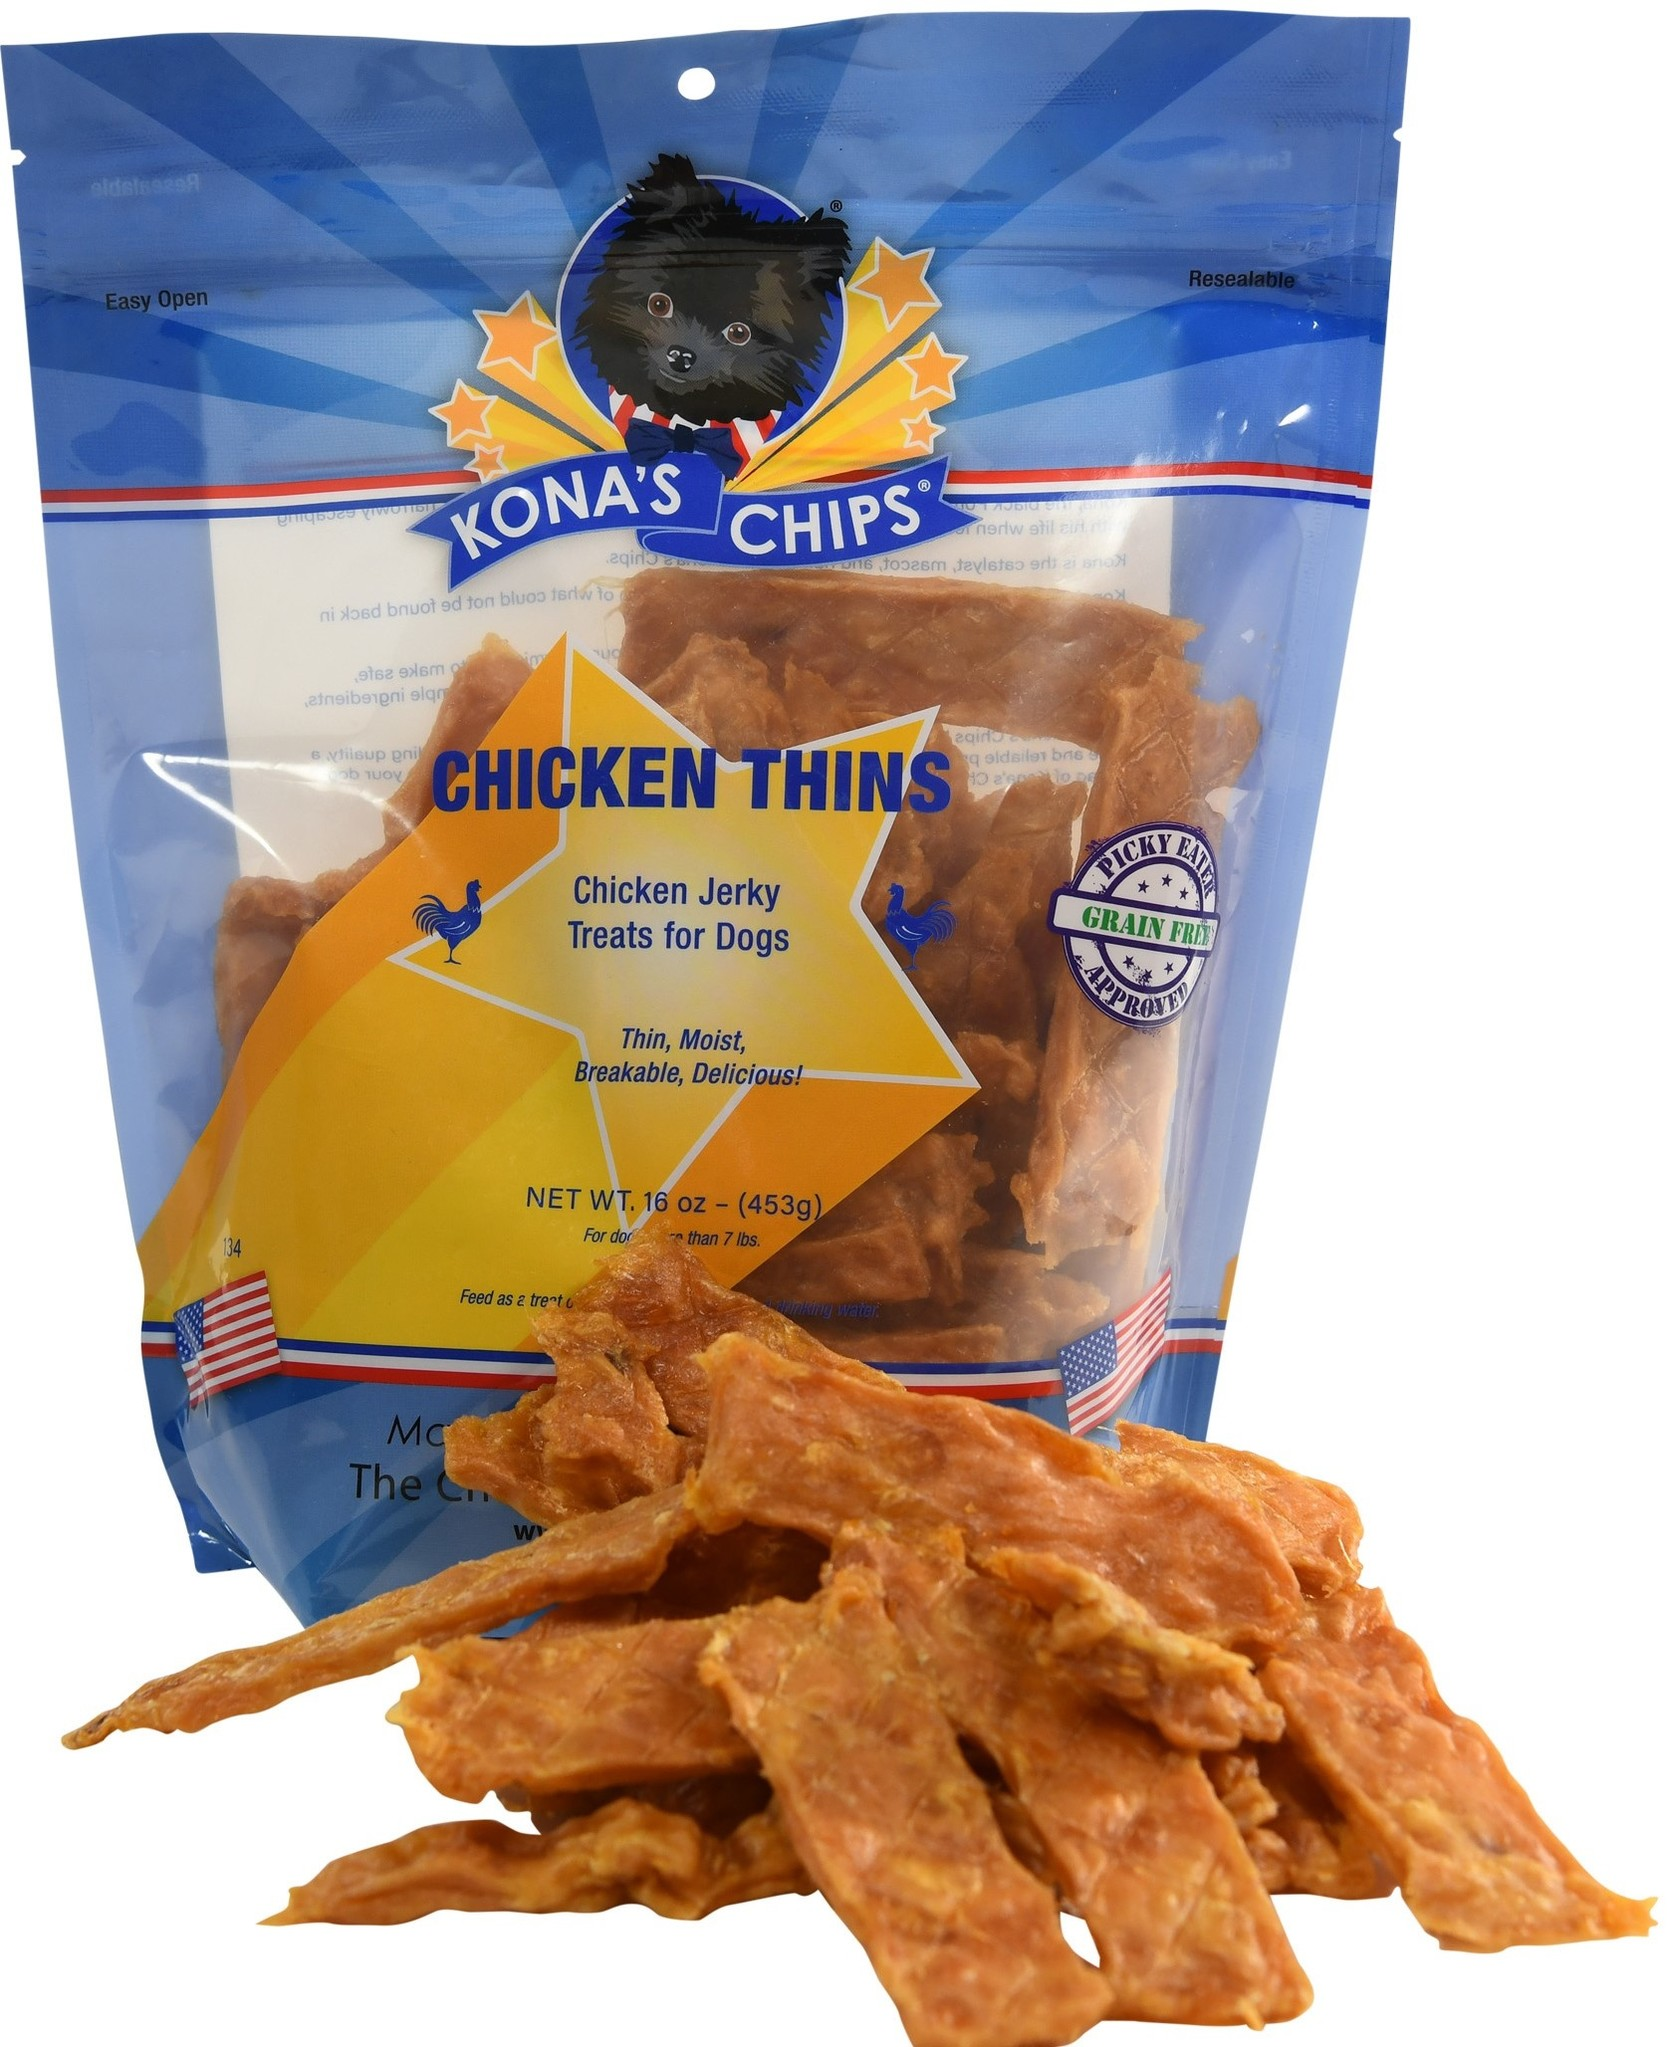 Kona's Chips Kona's Chips USA Chicken Thins